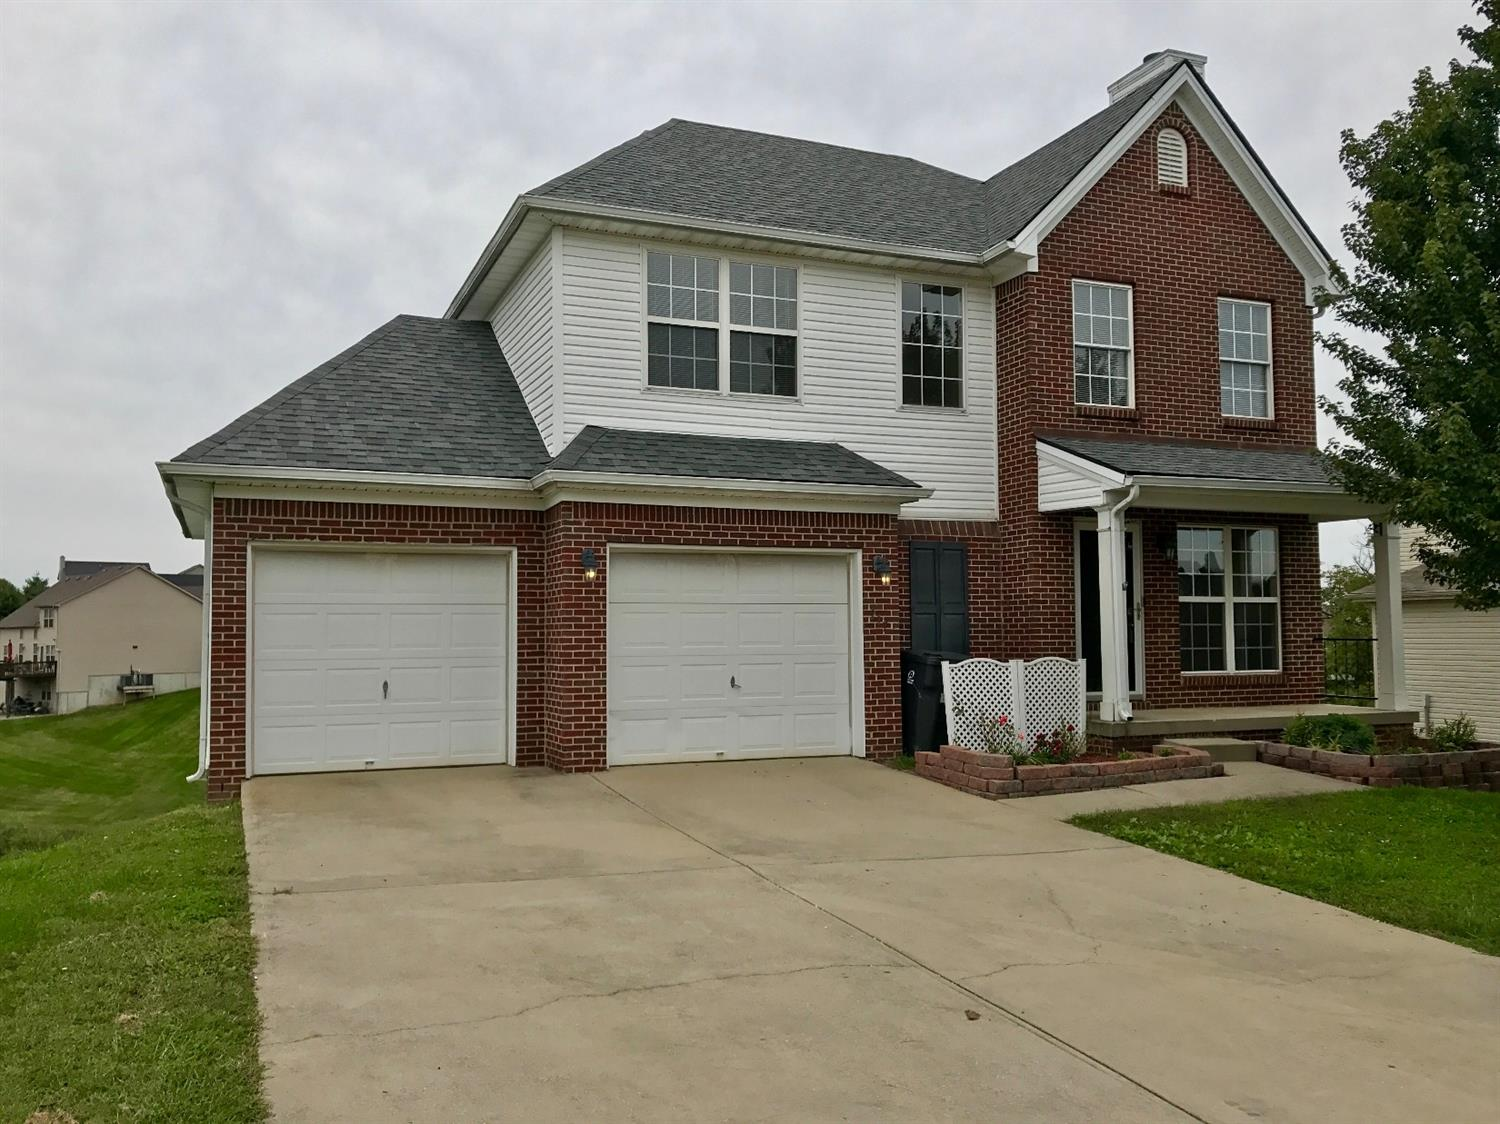 217 Hedgewood Ln, Richmond, KY 40475